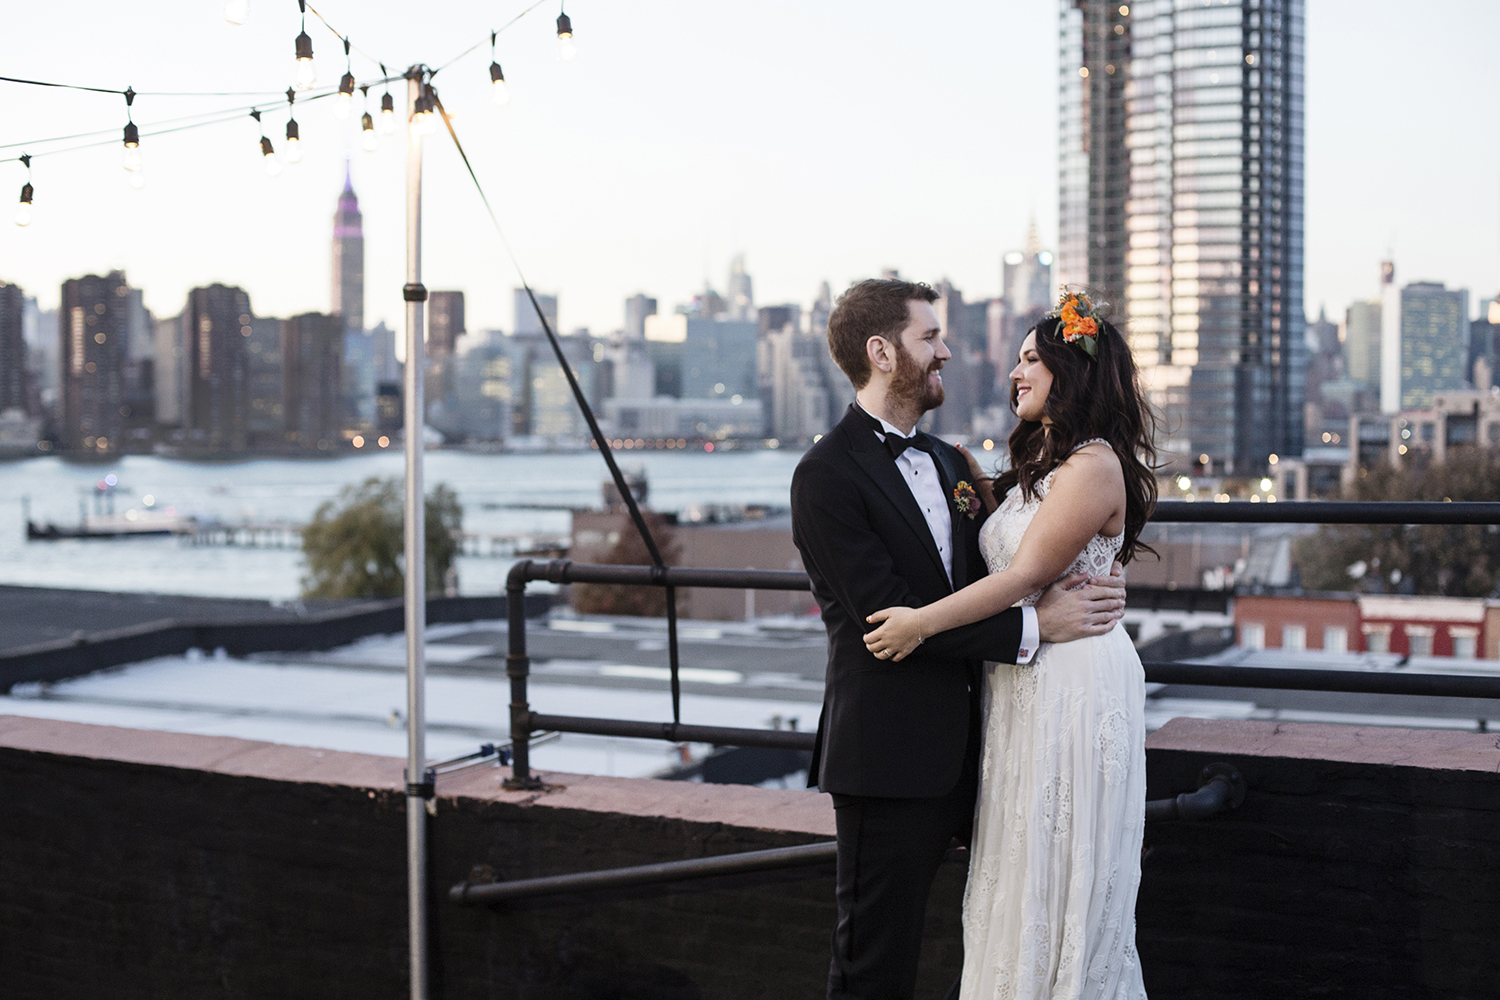 Veronica + Toby | Unforgettable New York wedding